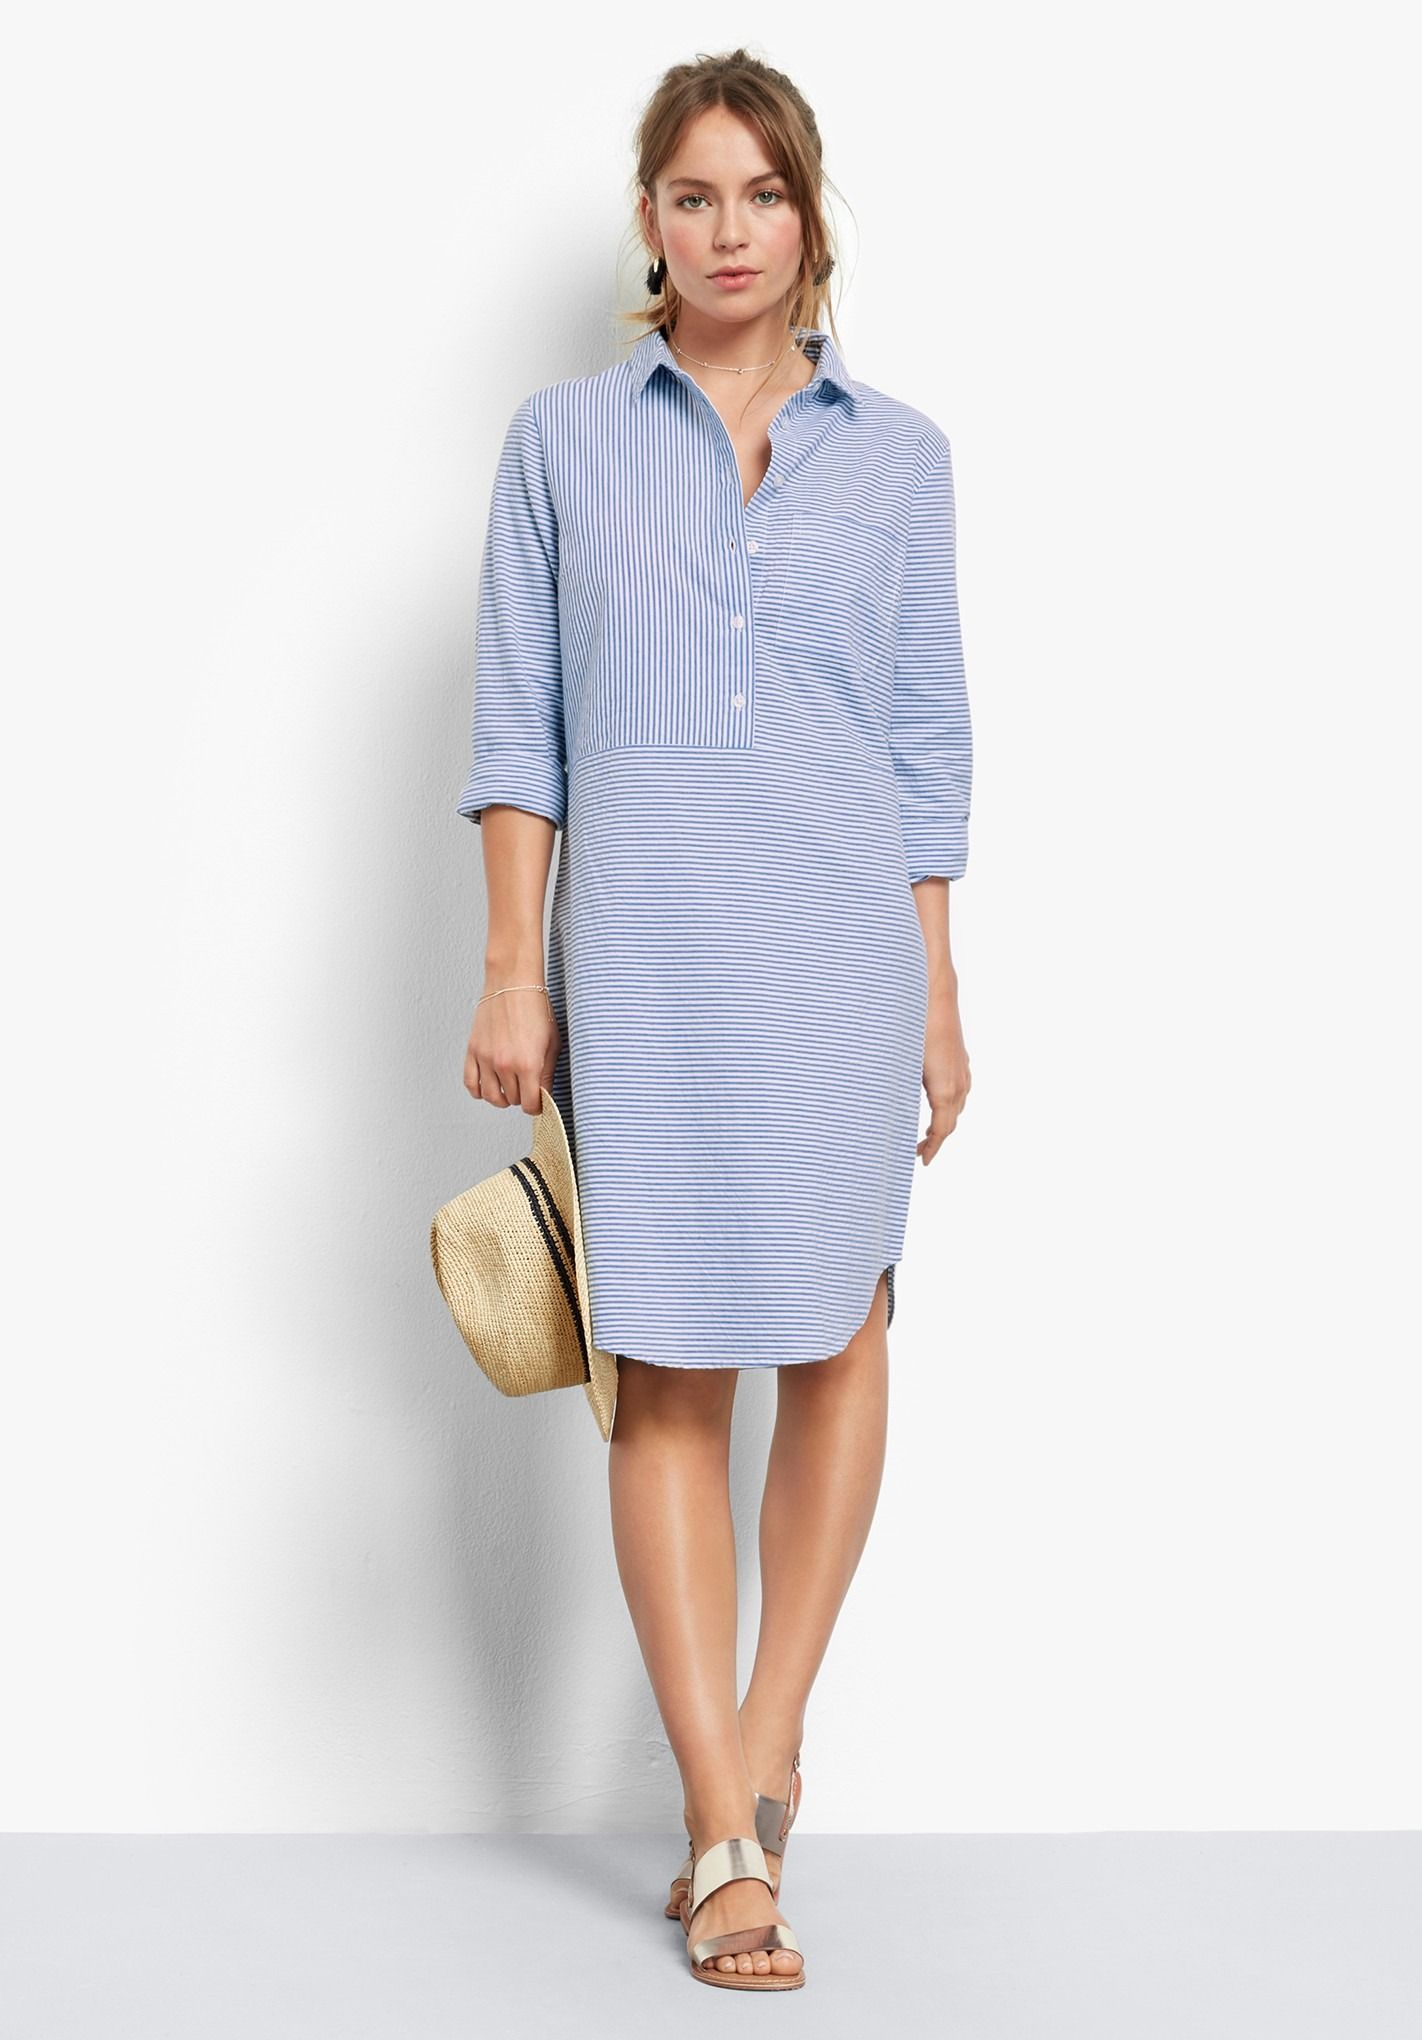 f4f912c11 Buy Porto Striped Tunic Dress from Hush: Set the trend this summer in our  striped tunic shirt dress. With roll up sleeves, a rounded hem and contrast  panels ...